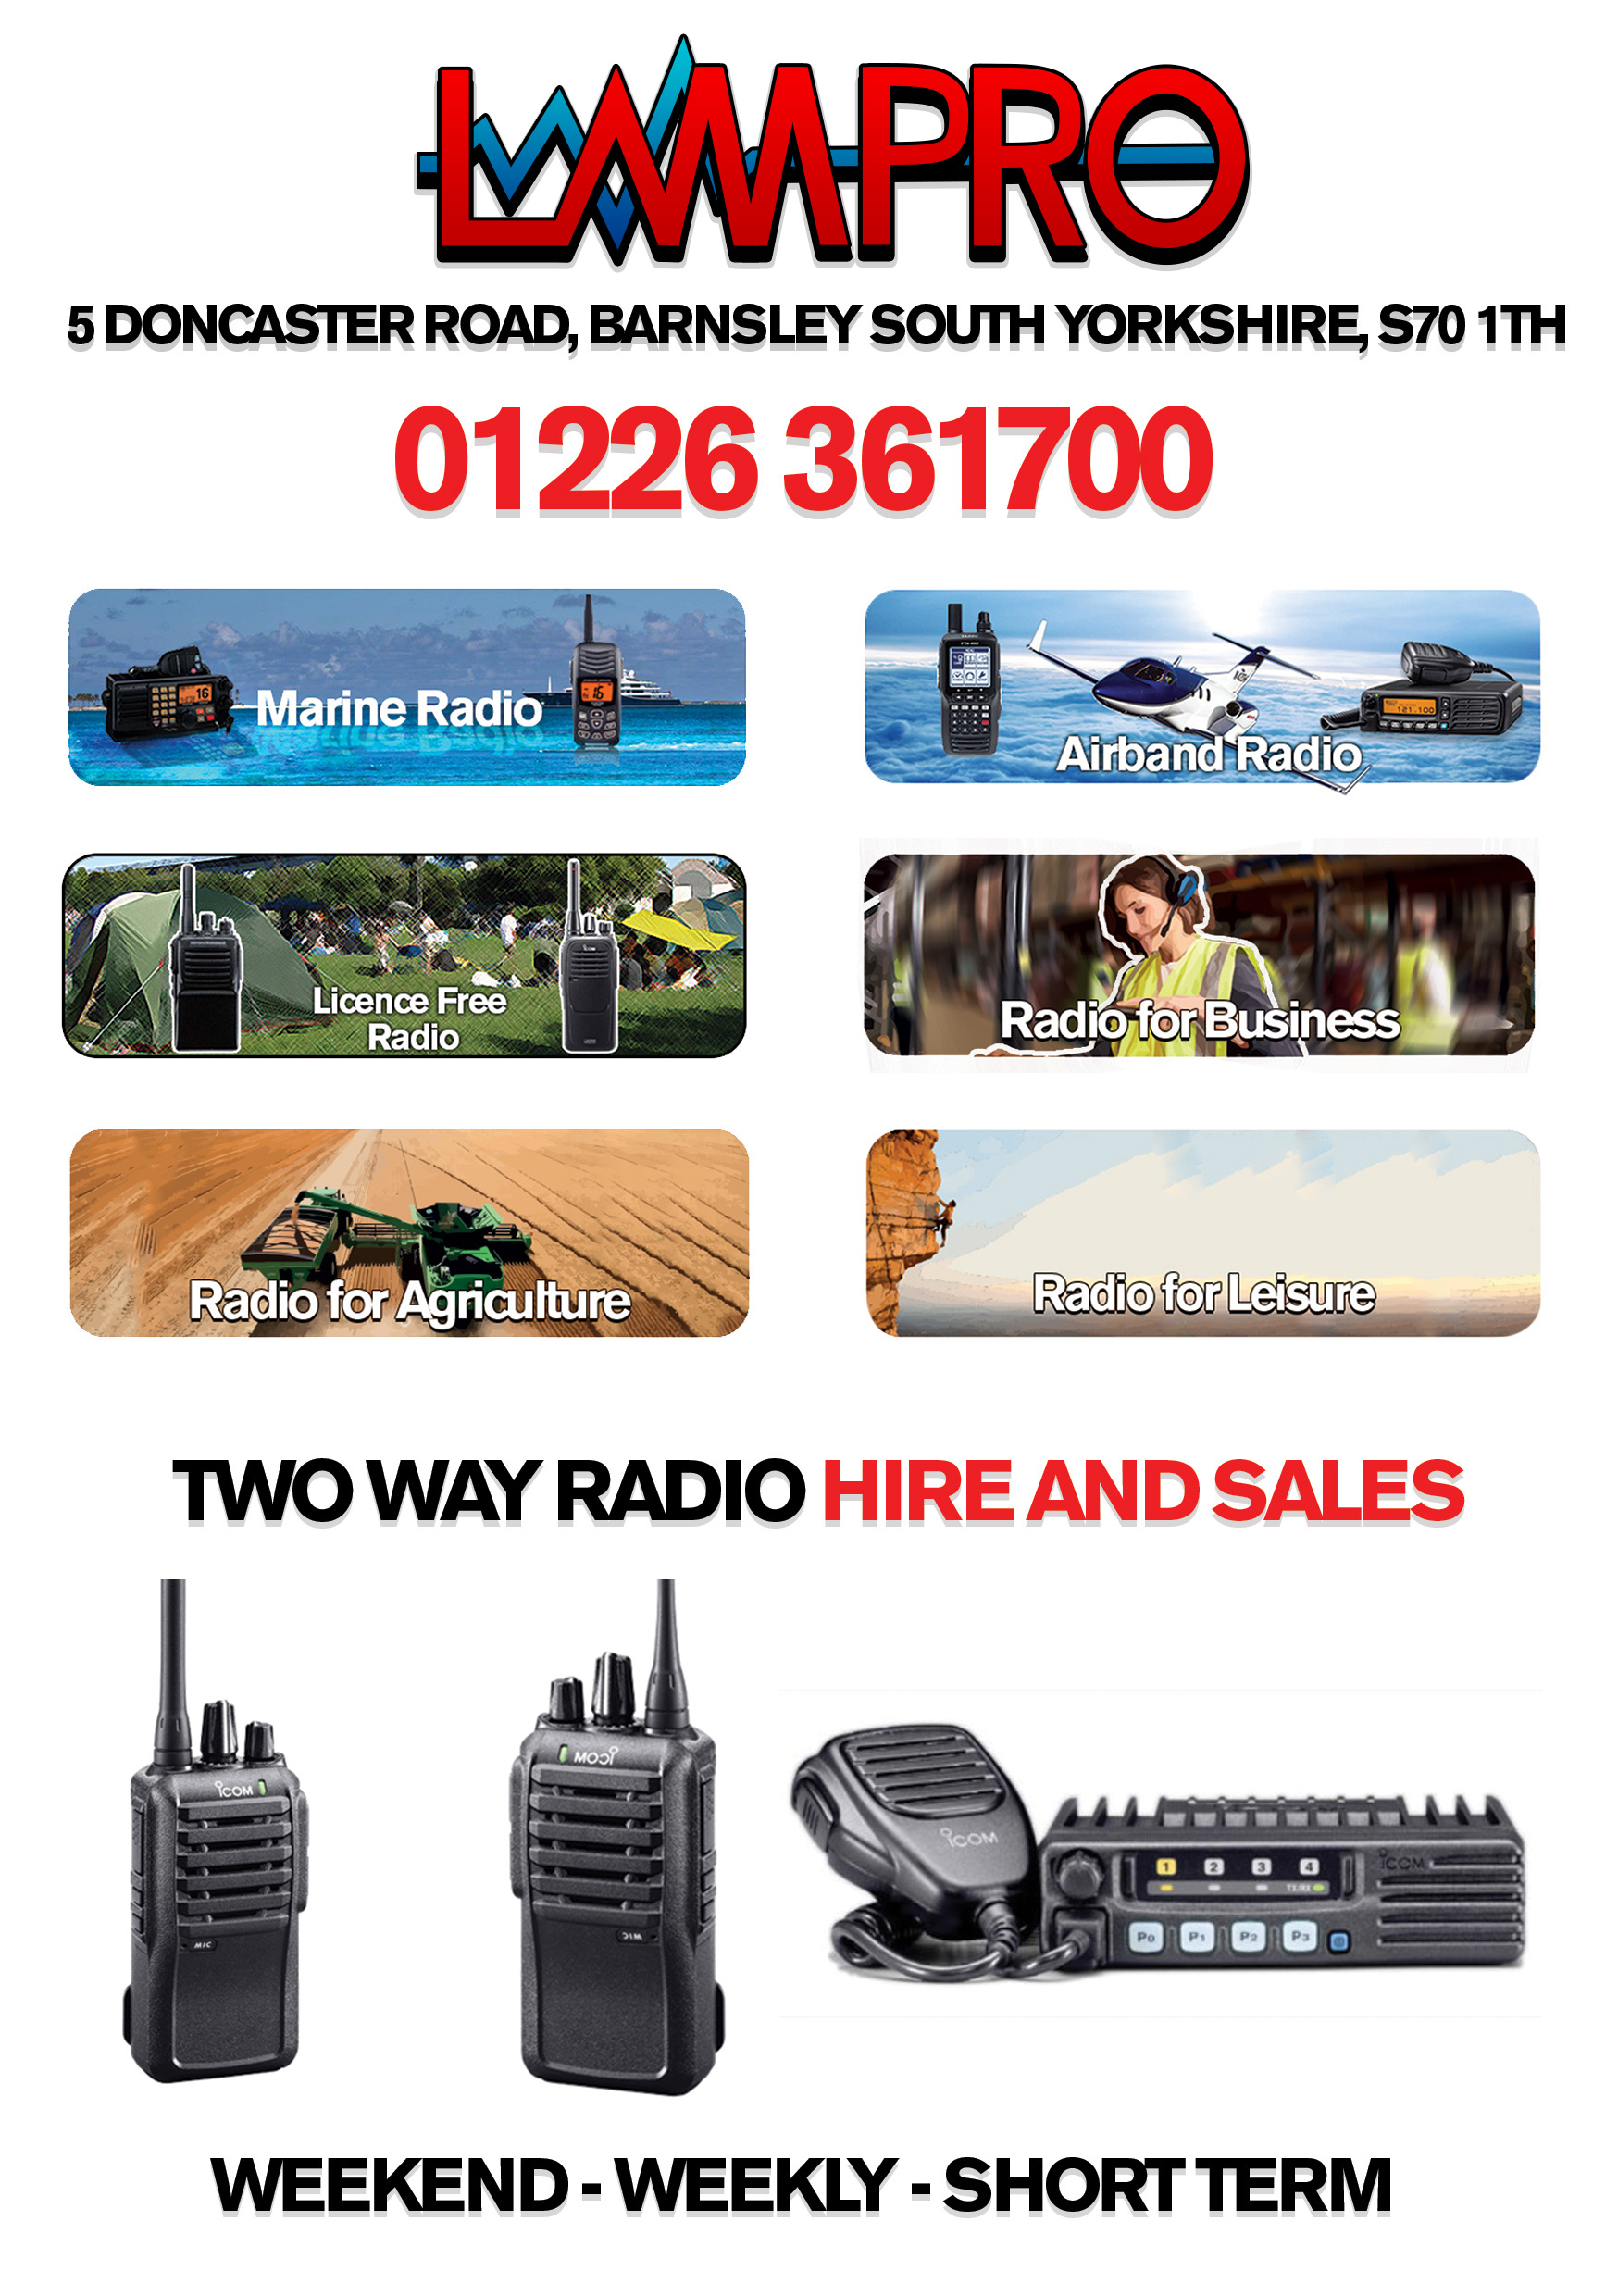 Two Way Radio Hire Sales Marine Aviation Business Schools Farming Sport Icom Kenwood Hytera Barnsley South Yorkshire UK Call 01226 361700